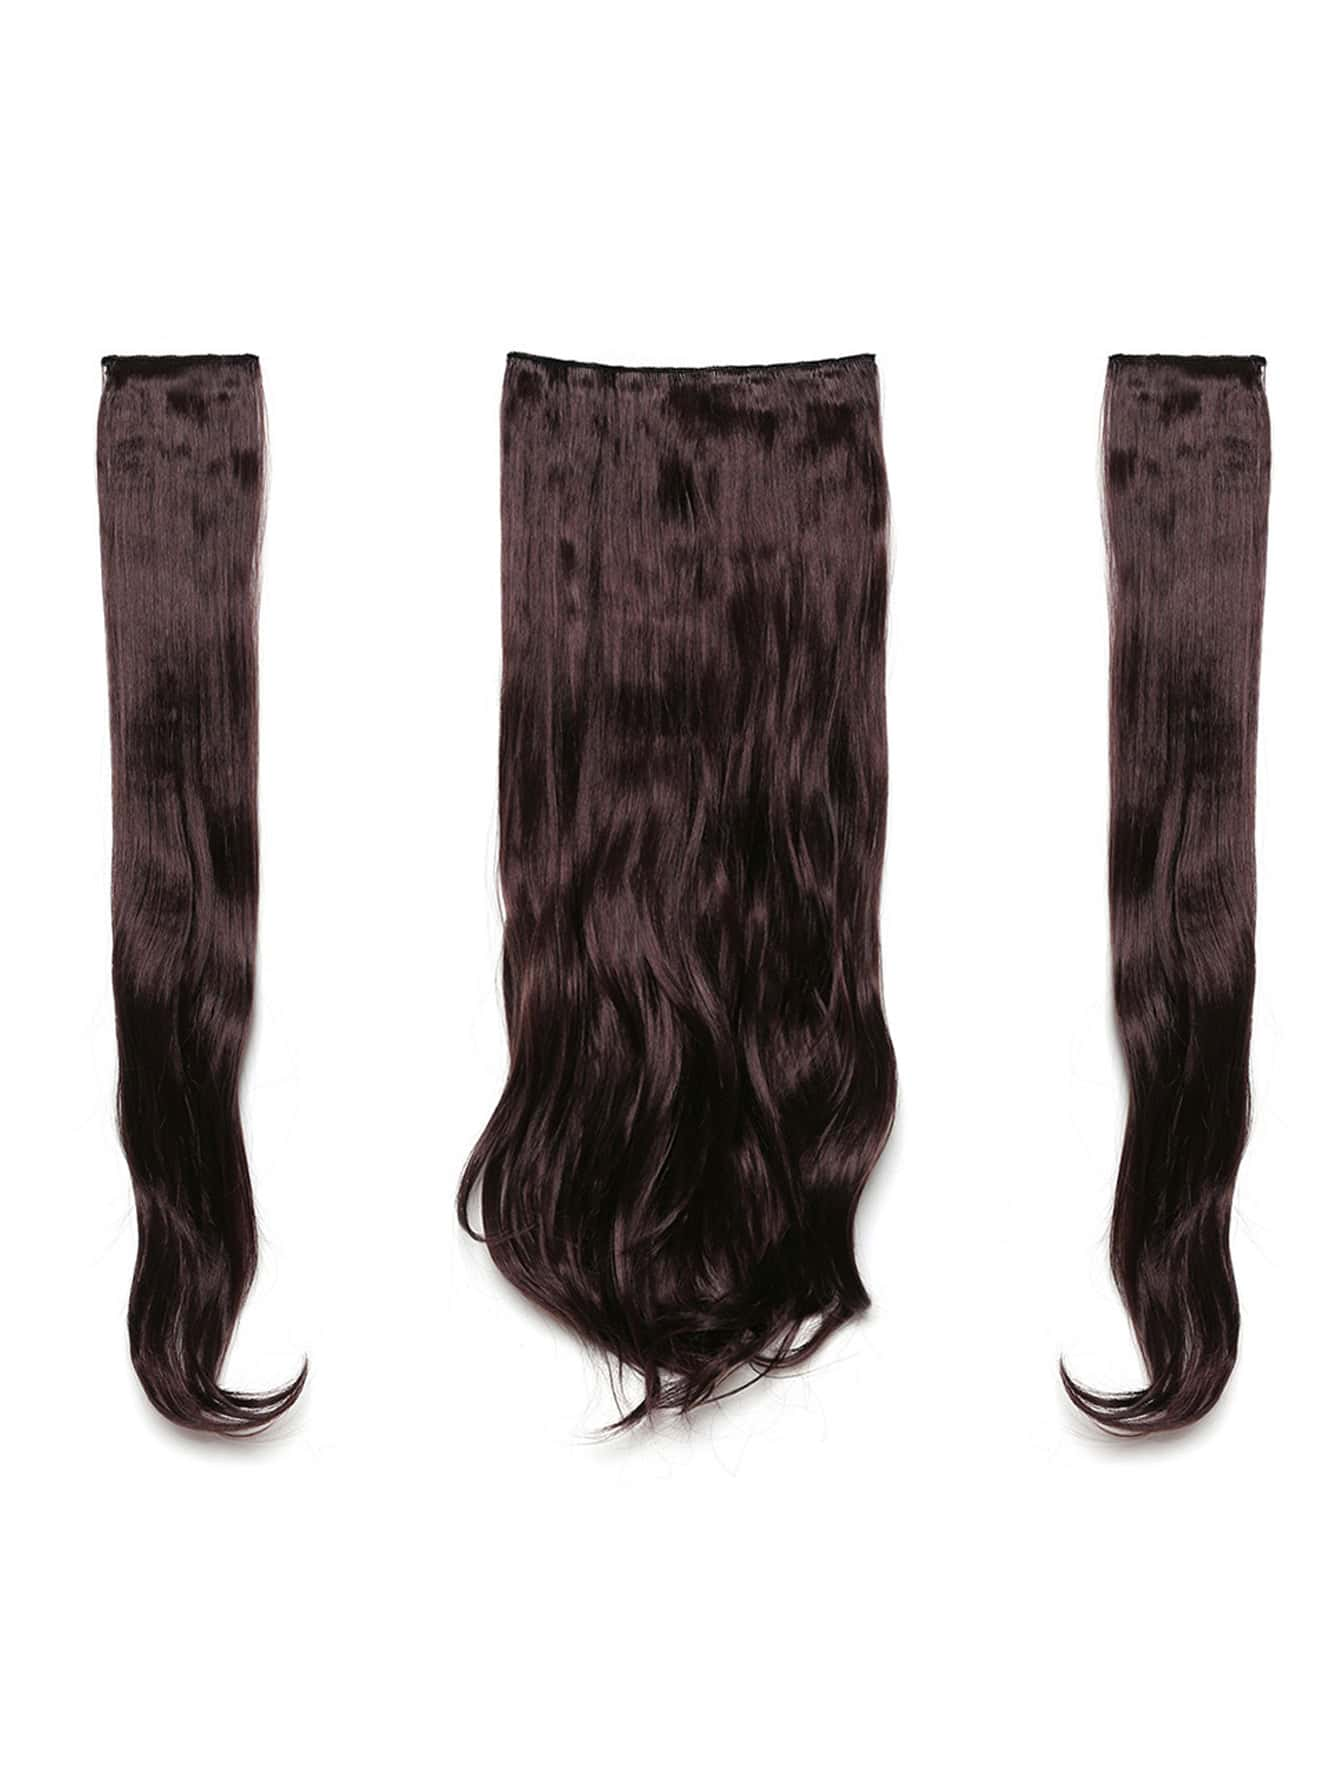 Plum Clip In Soft Wave Hair Extension 3pcs